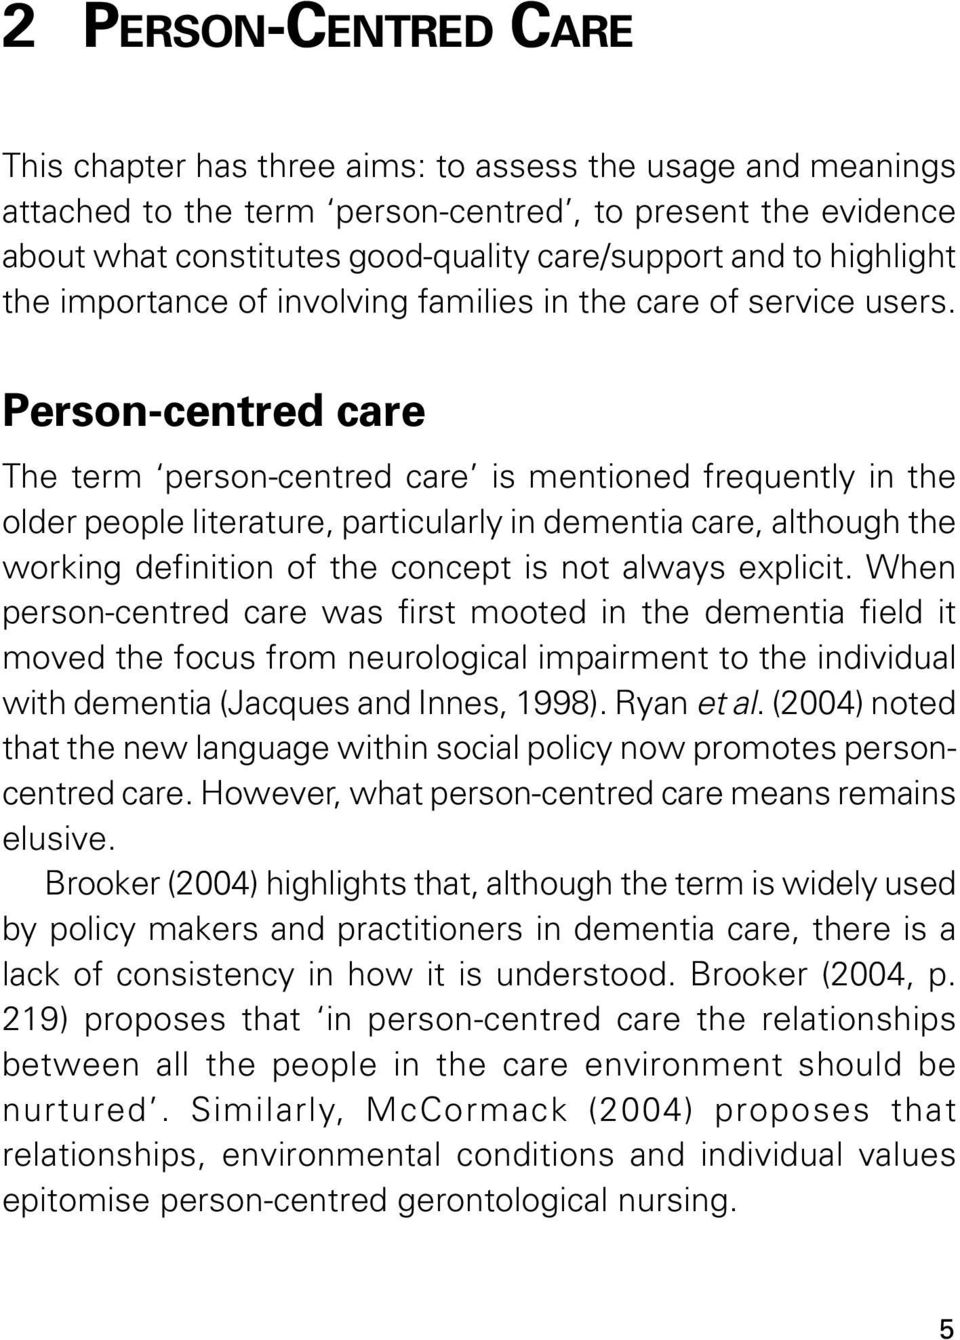 Person-centred care The term person-centred care is mentioned frequently in the older people literature, particularly in dementia care, although the working definition of the concept is not always